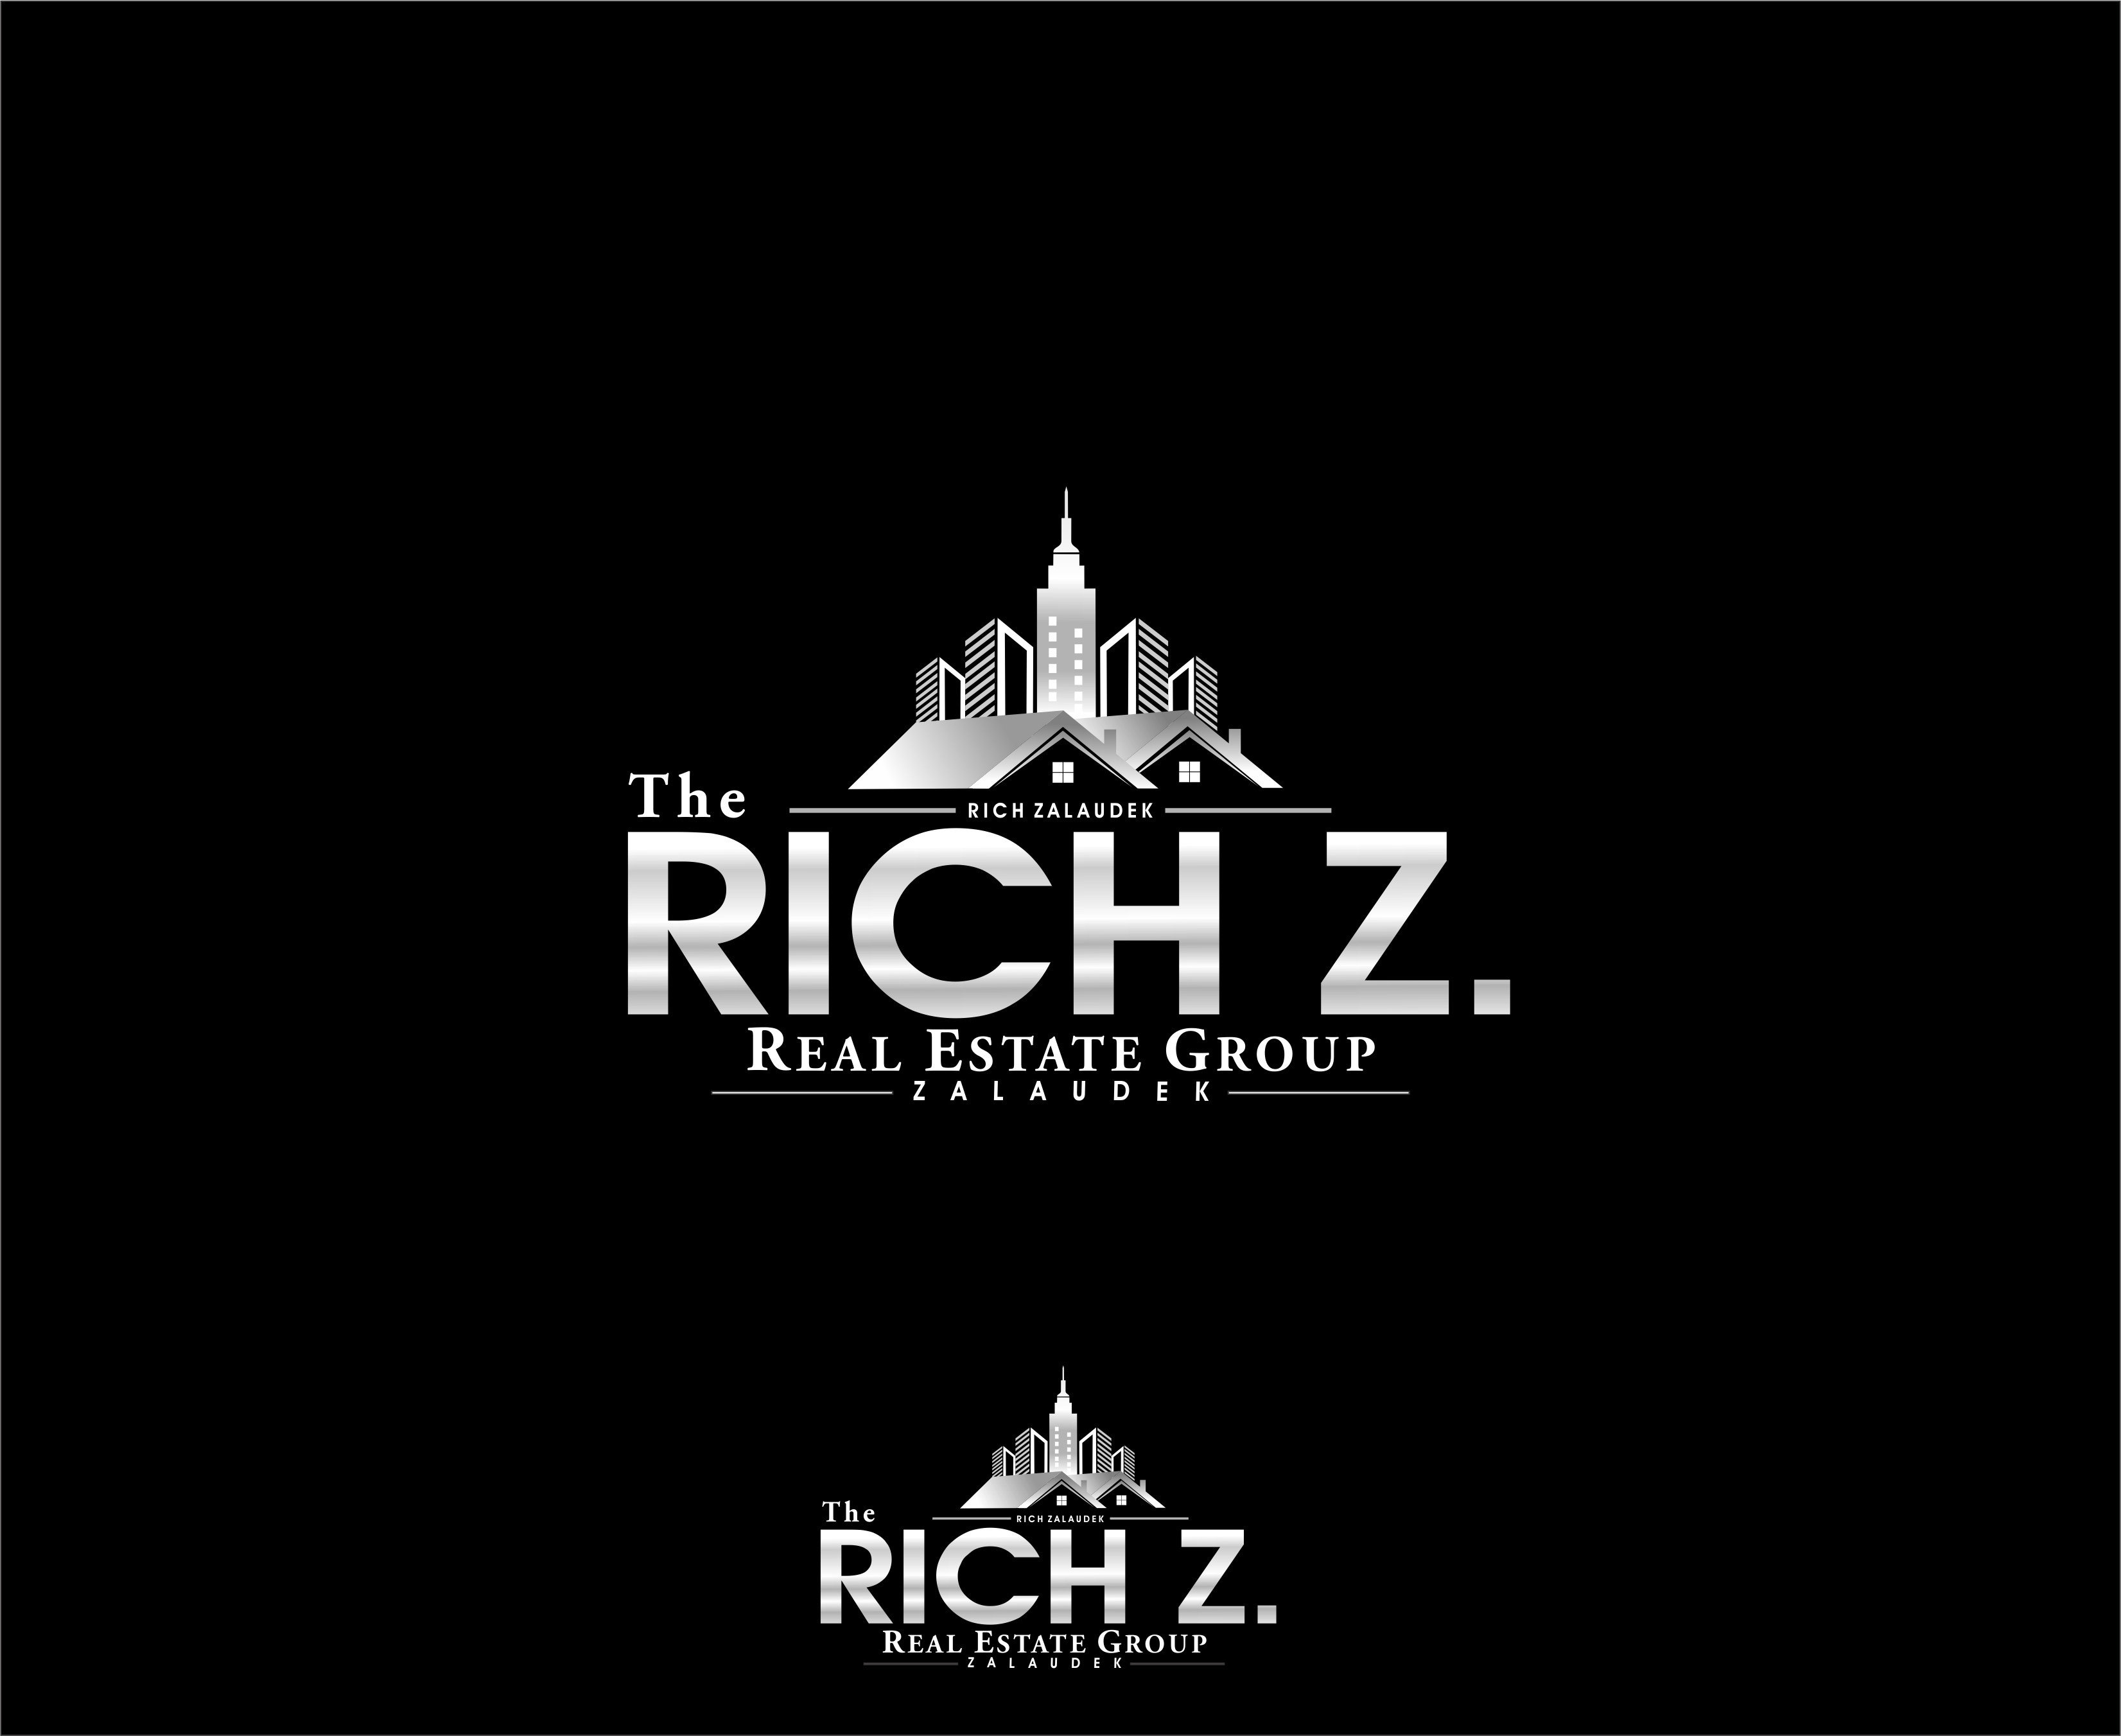 Logo Design by Mhon_Rose - Entry No. 114 in the Logo Design Contest The Rich Z. Real Estate Group Logo Design.